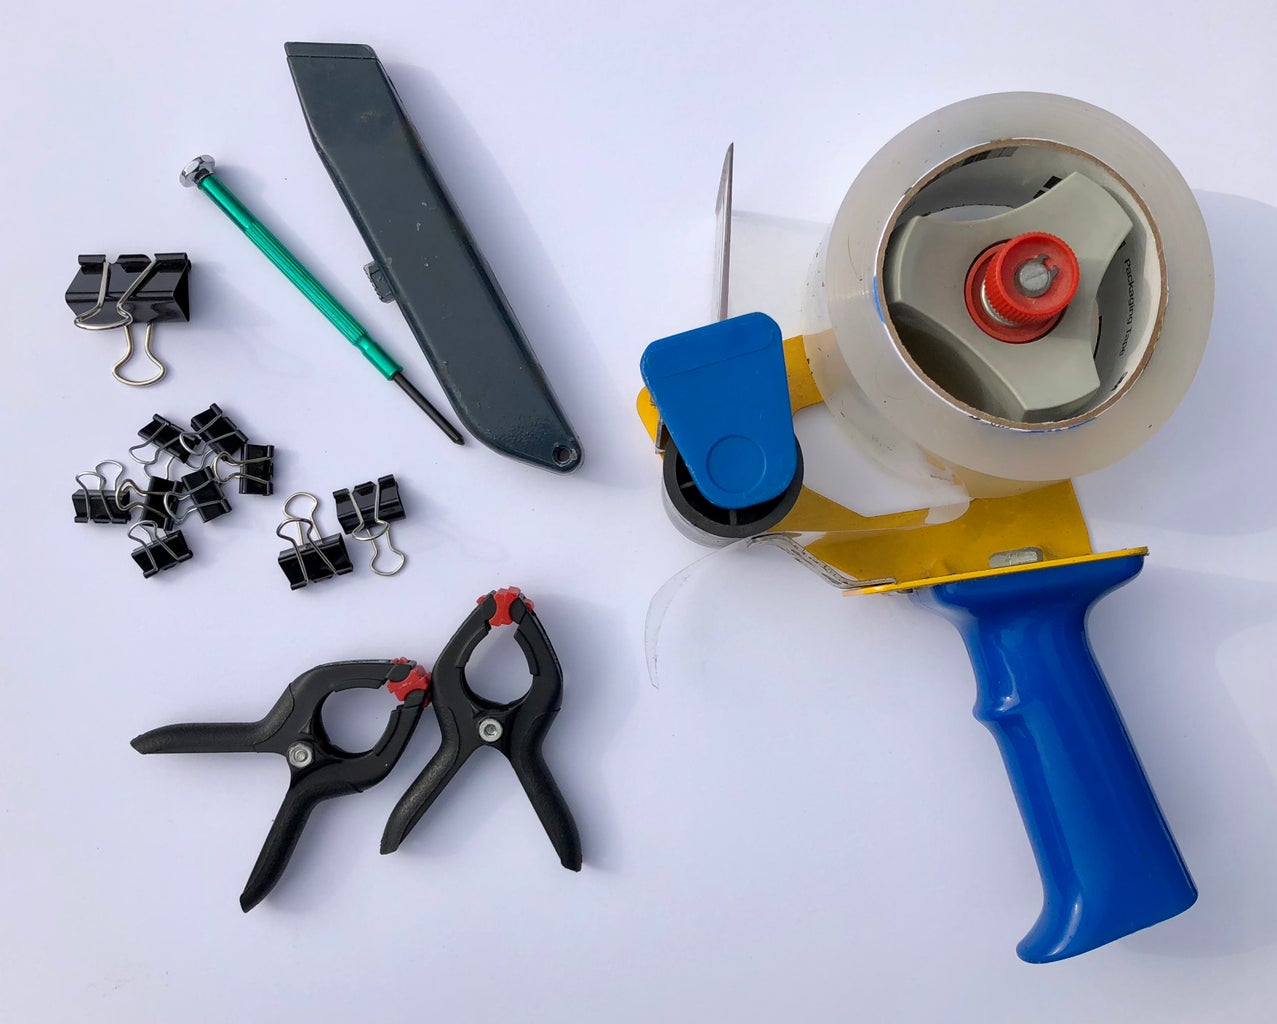 Tools and Clamps